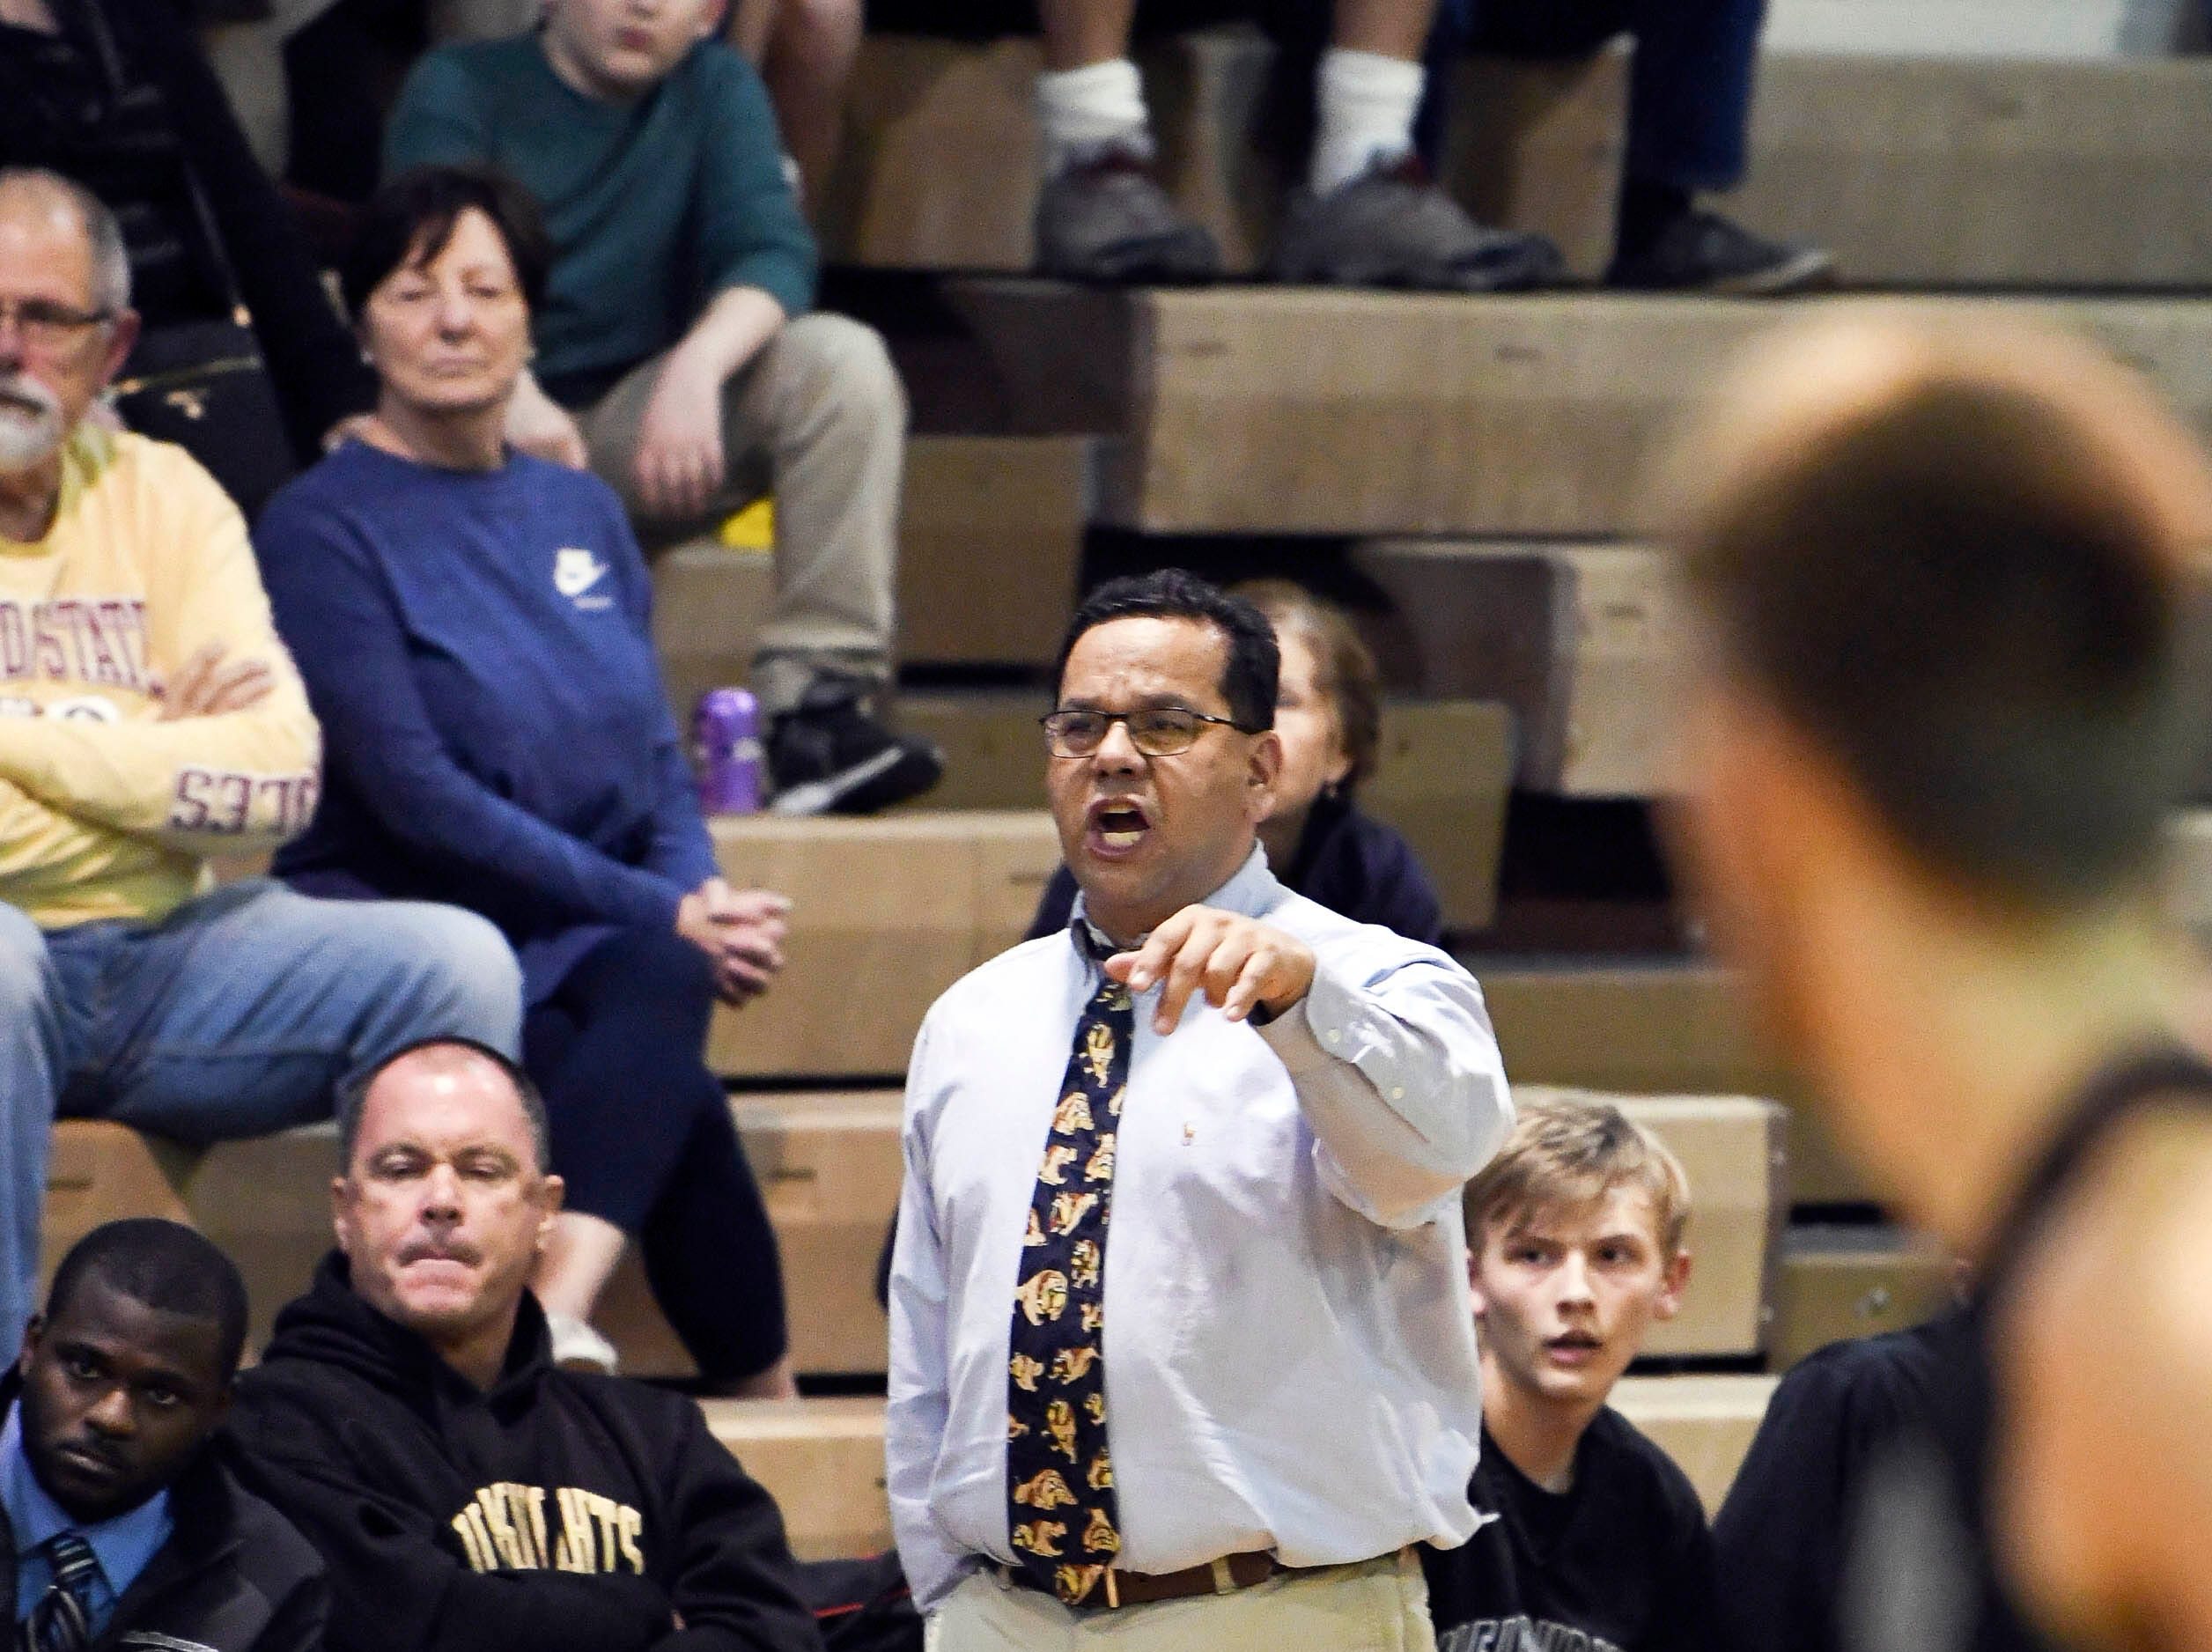 Melbourne boys basketball head coach Mike Soliven instructs his players during Thursday's game at Cocoa High School.